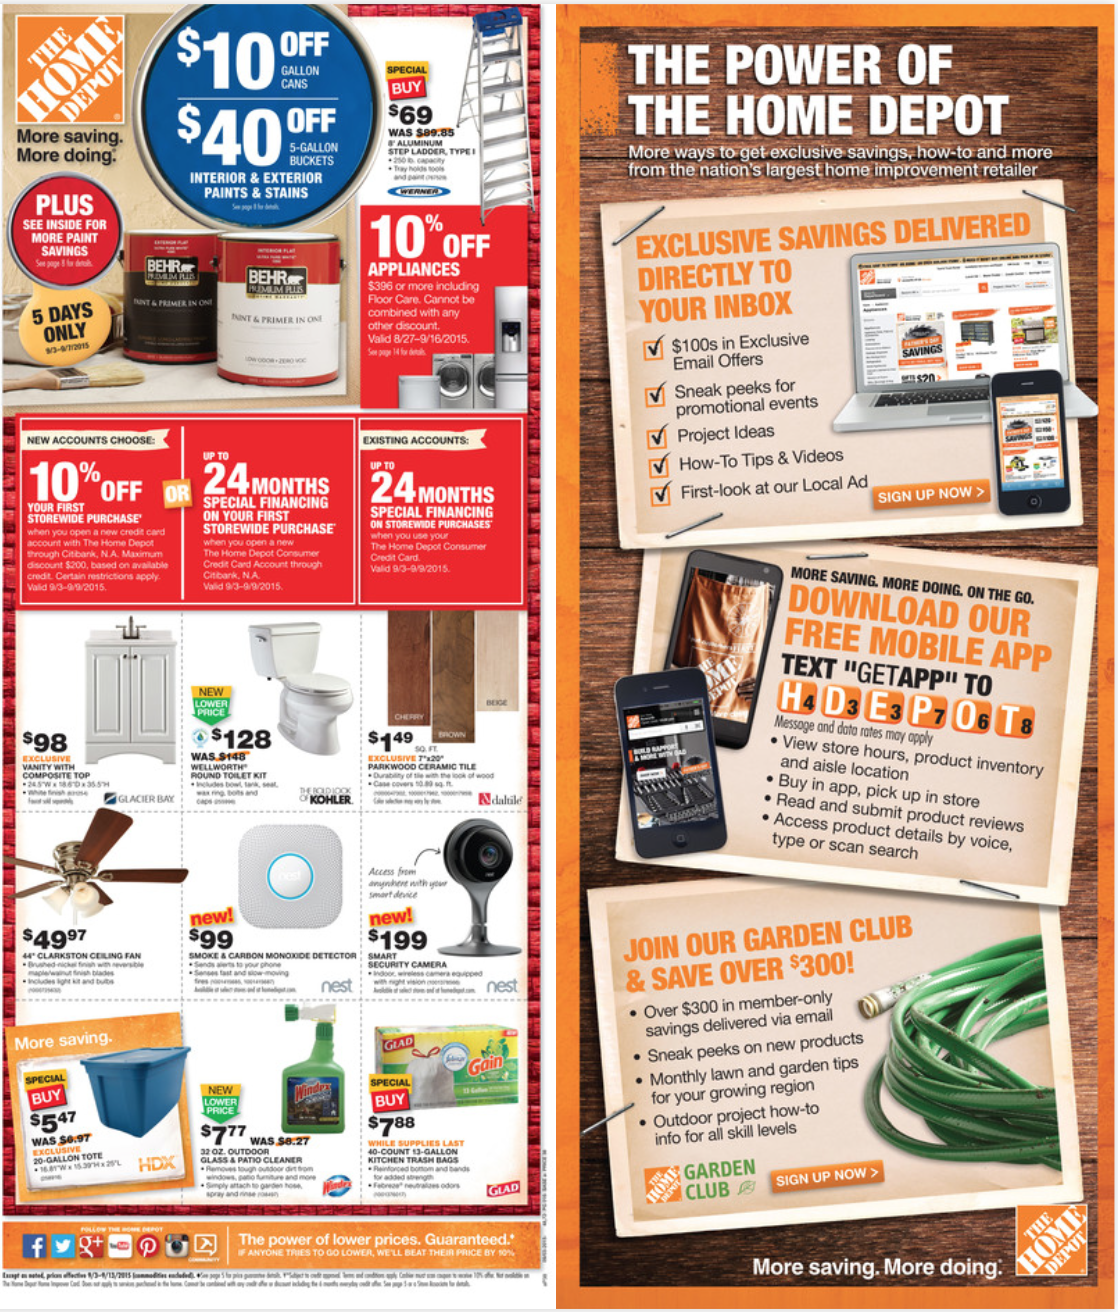 Labor Day Furniture Sales 2014: Home Depot Labor Day Sale 2019